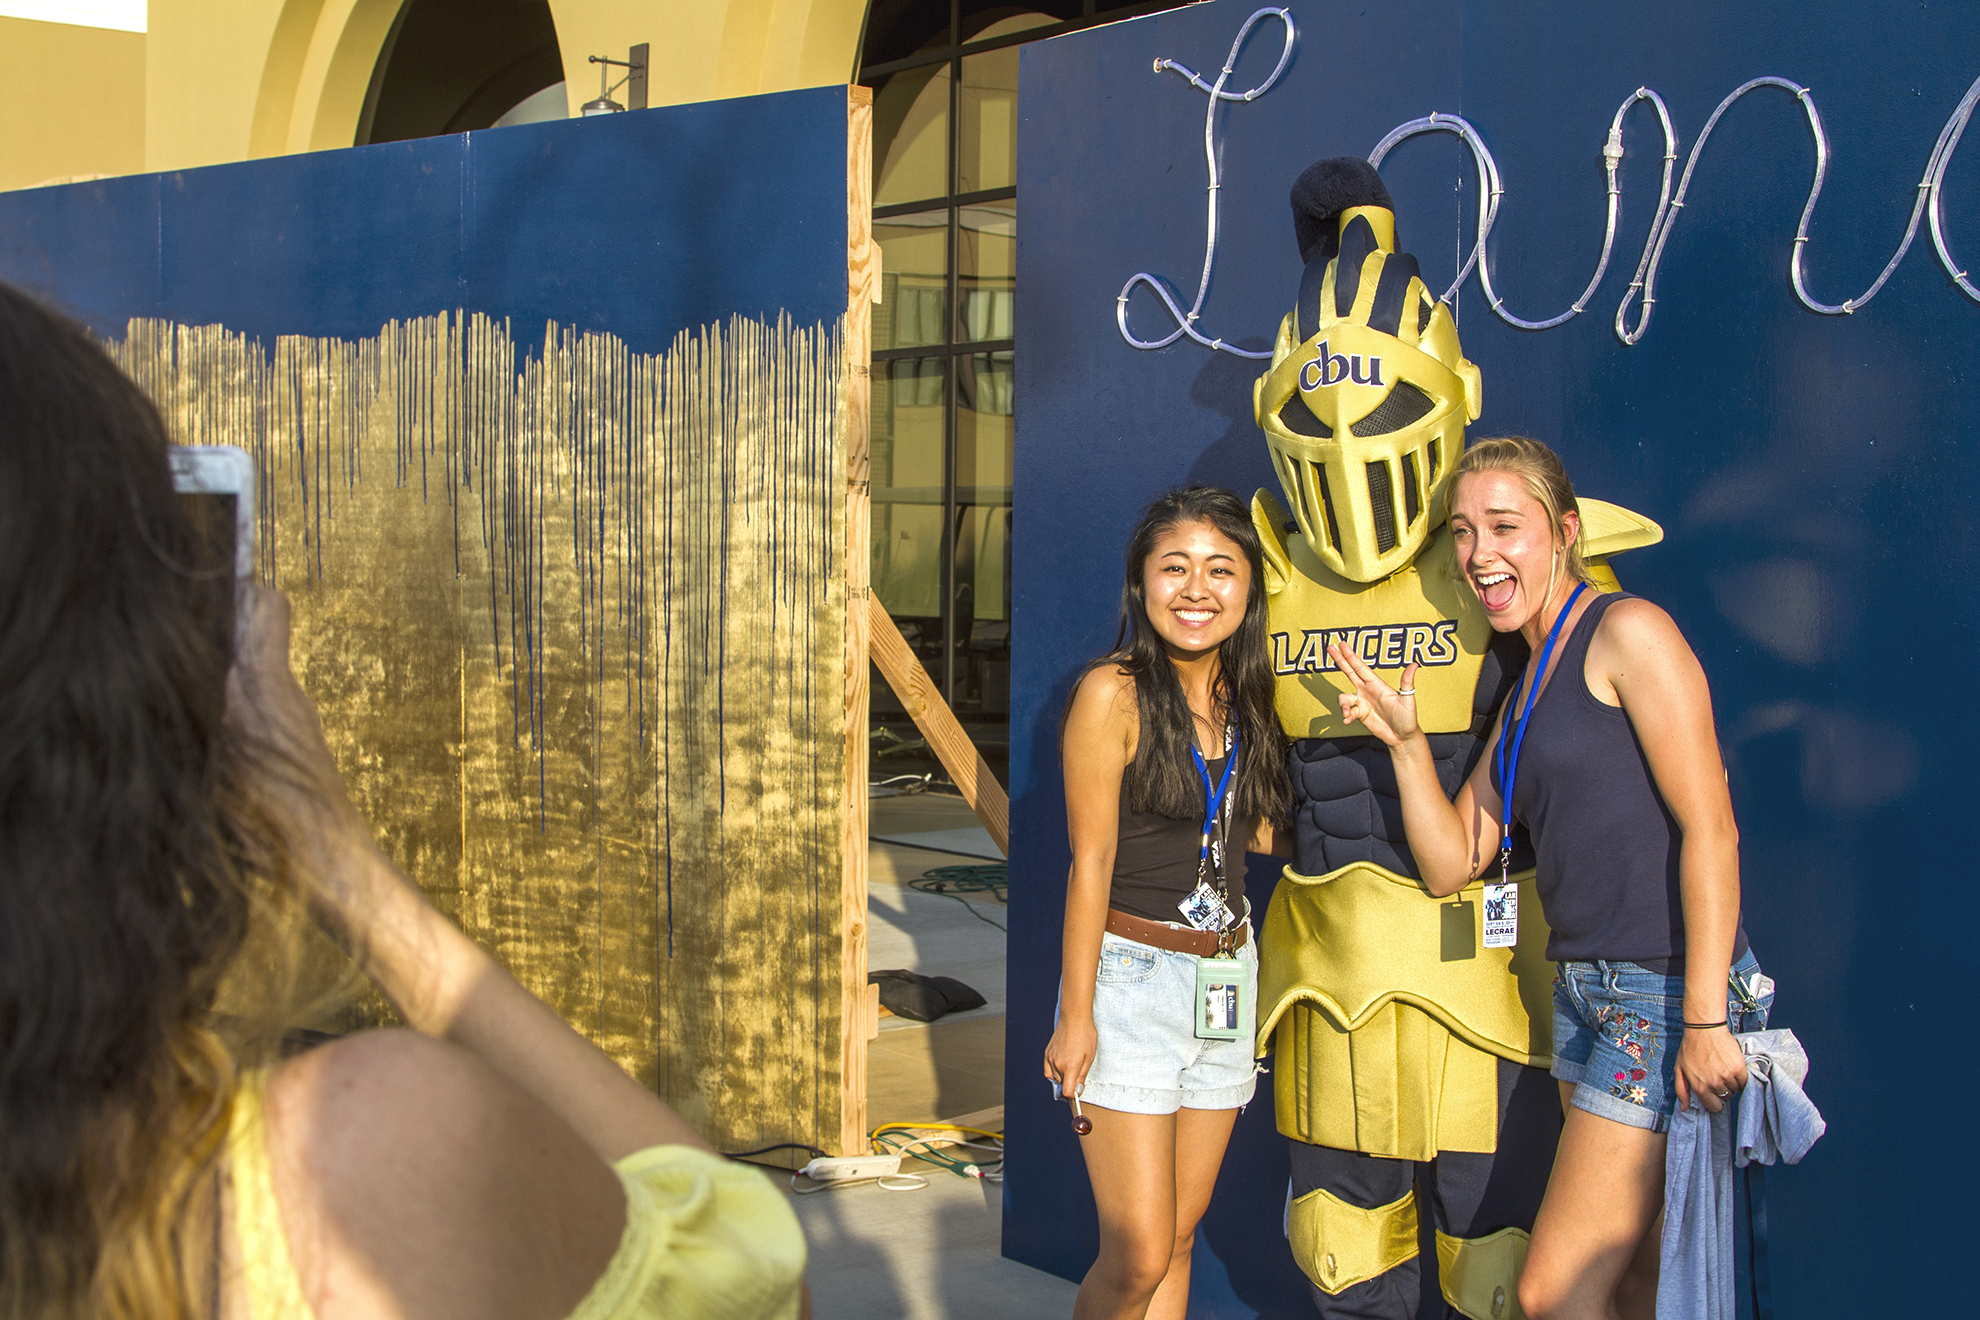 Classes for the fall 2017 semester at California Baptist University started Sept. 5, capping off a busy four-day start to the semester that included Welcome Weekend and Lancer Palooza.